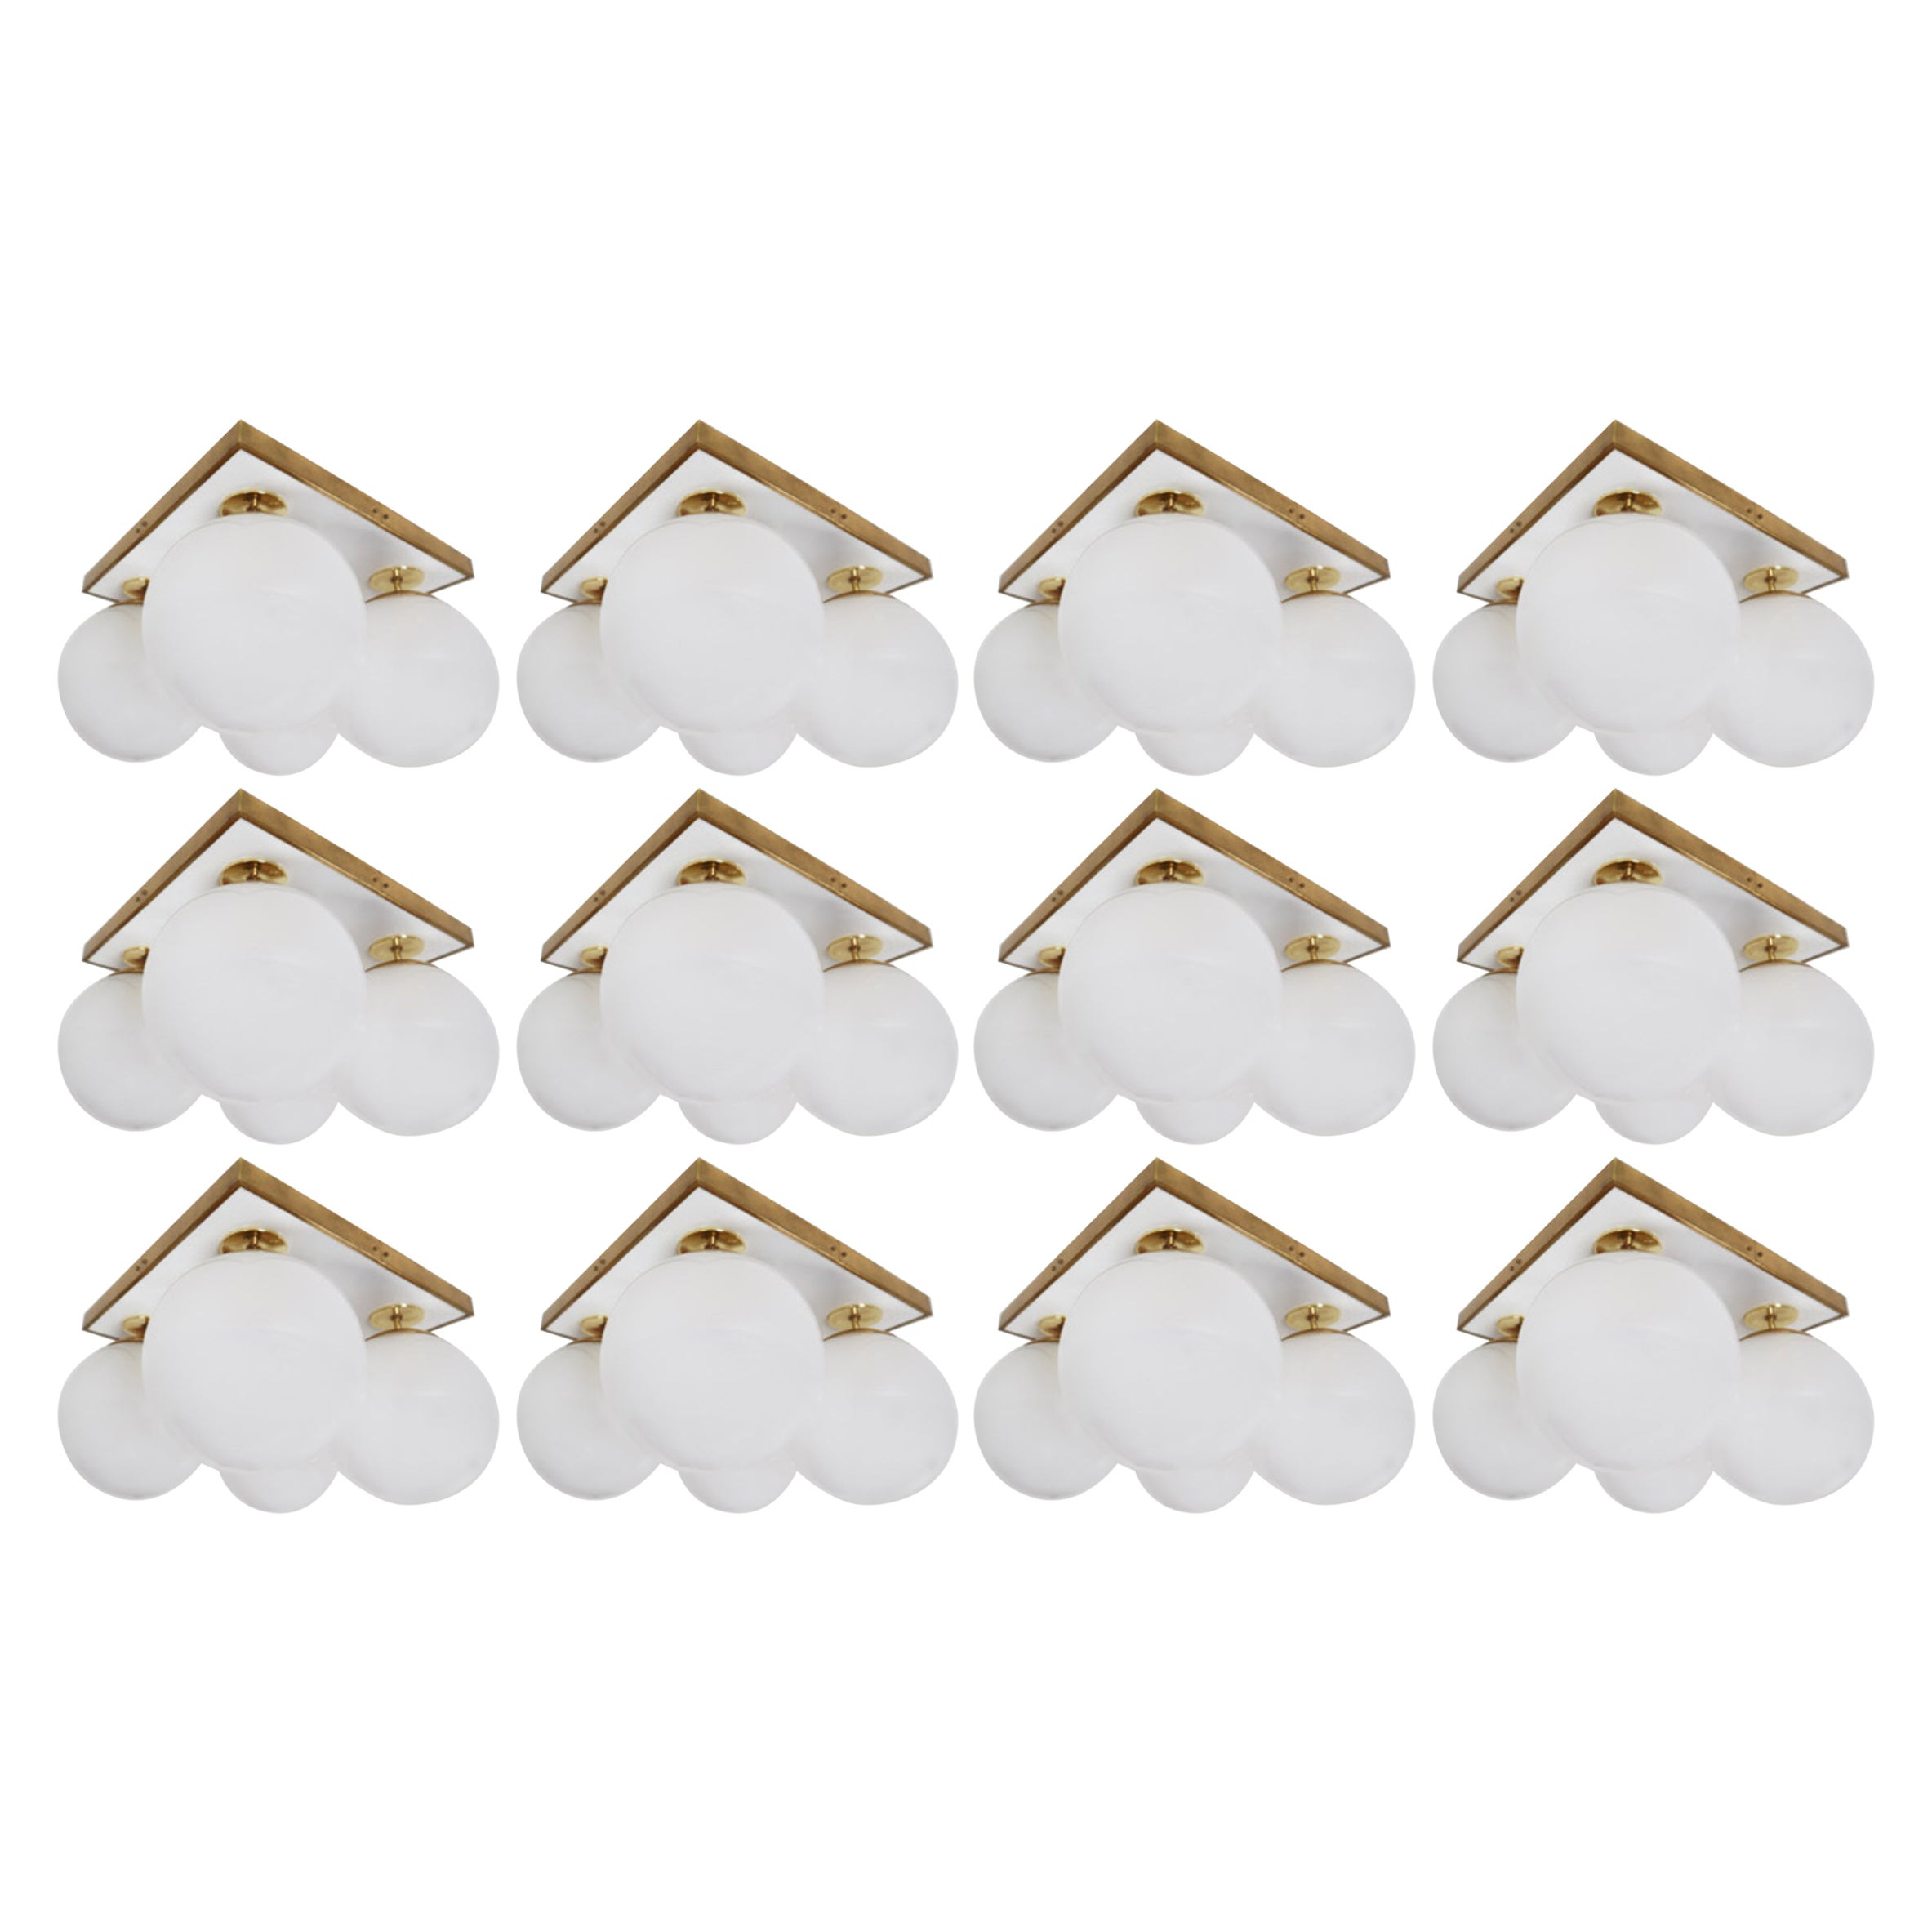 Set of Mid-Century Modern Ceiling Lights with Four Pearl White Glass Globes